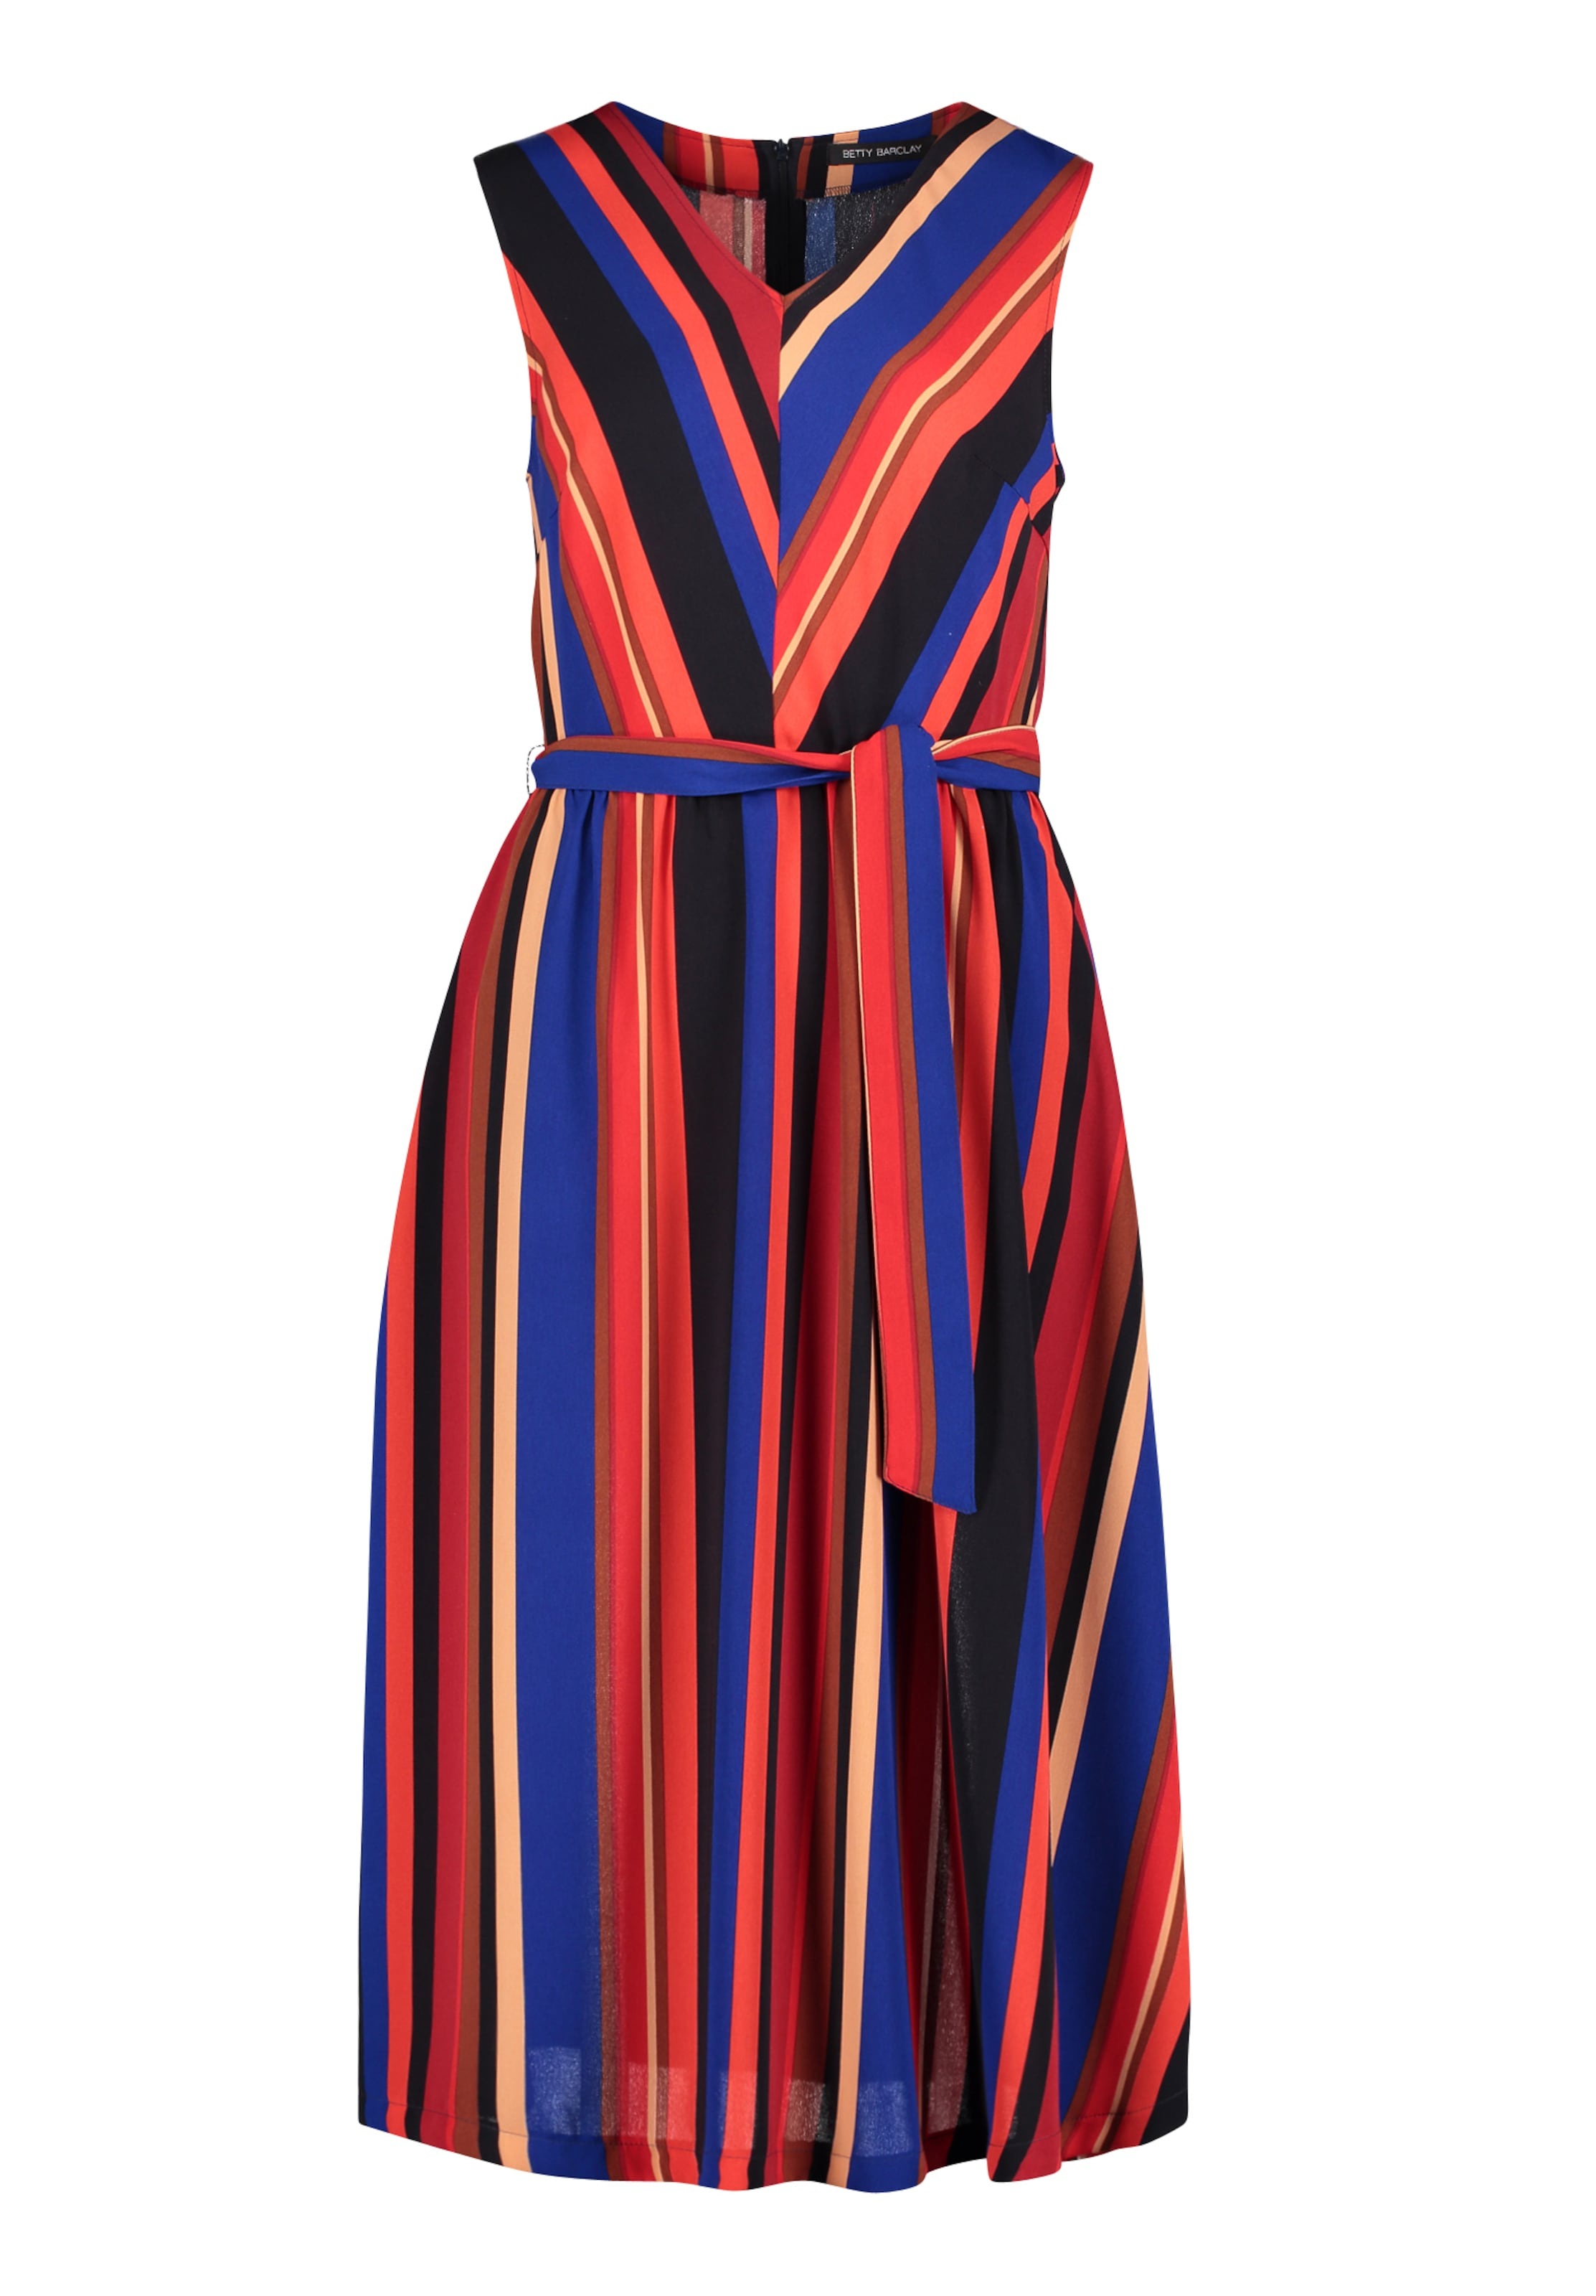 BlauMischfarben Betty Betty Barclay Barclay Kleid Kleid Kleid BlauMischfarben Betty In Barclay In DEIeHYW29